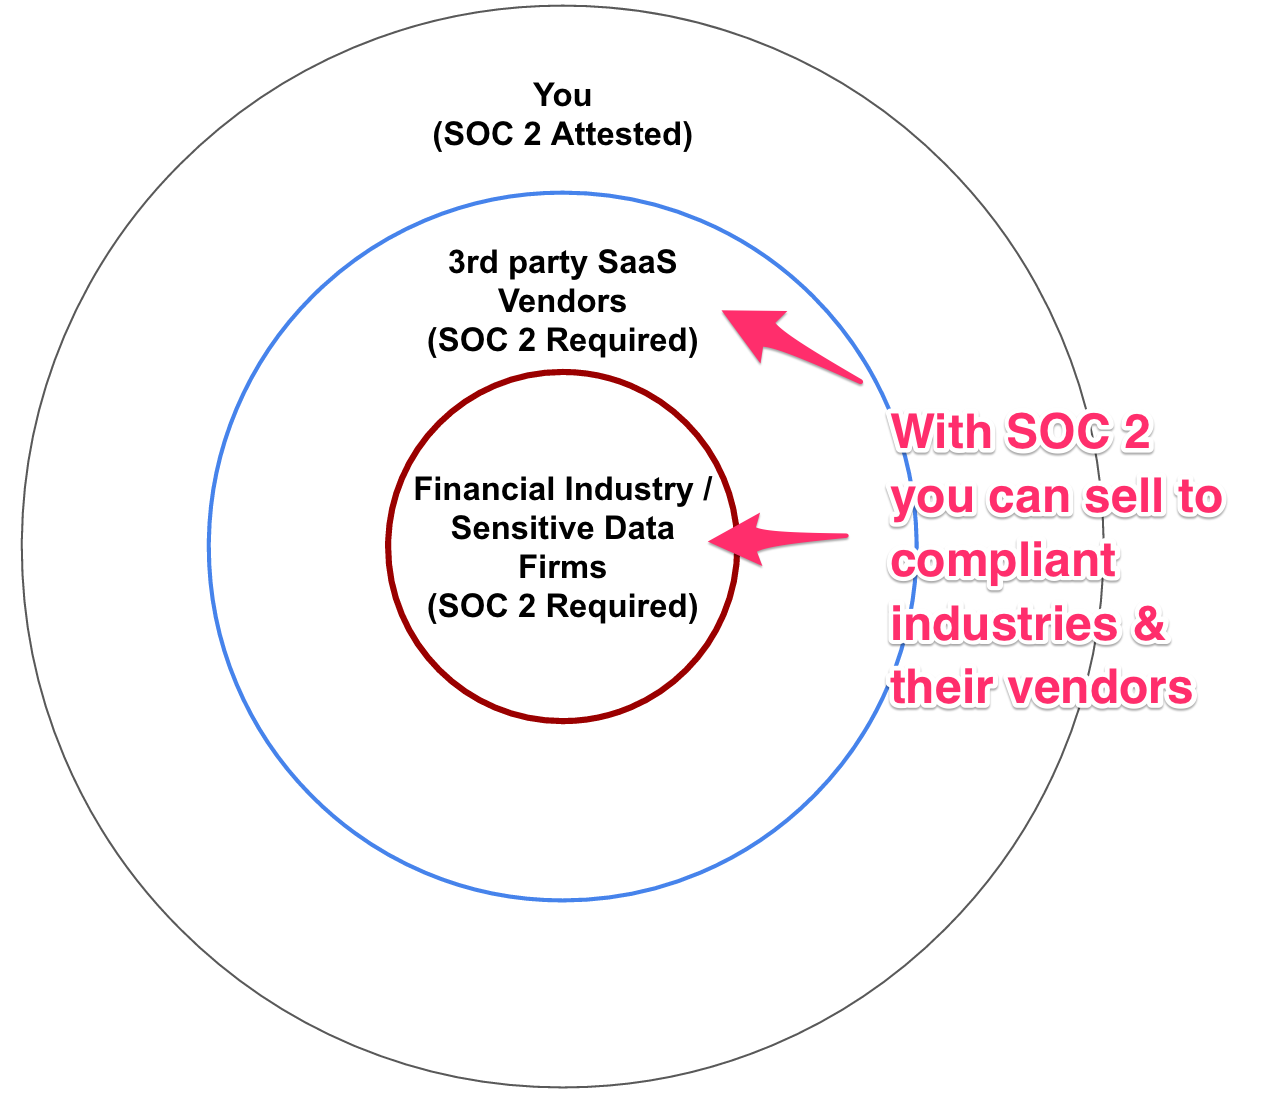 Being SOC compliant lets you sell to companies that require it